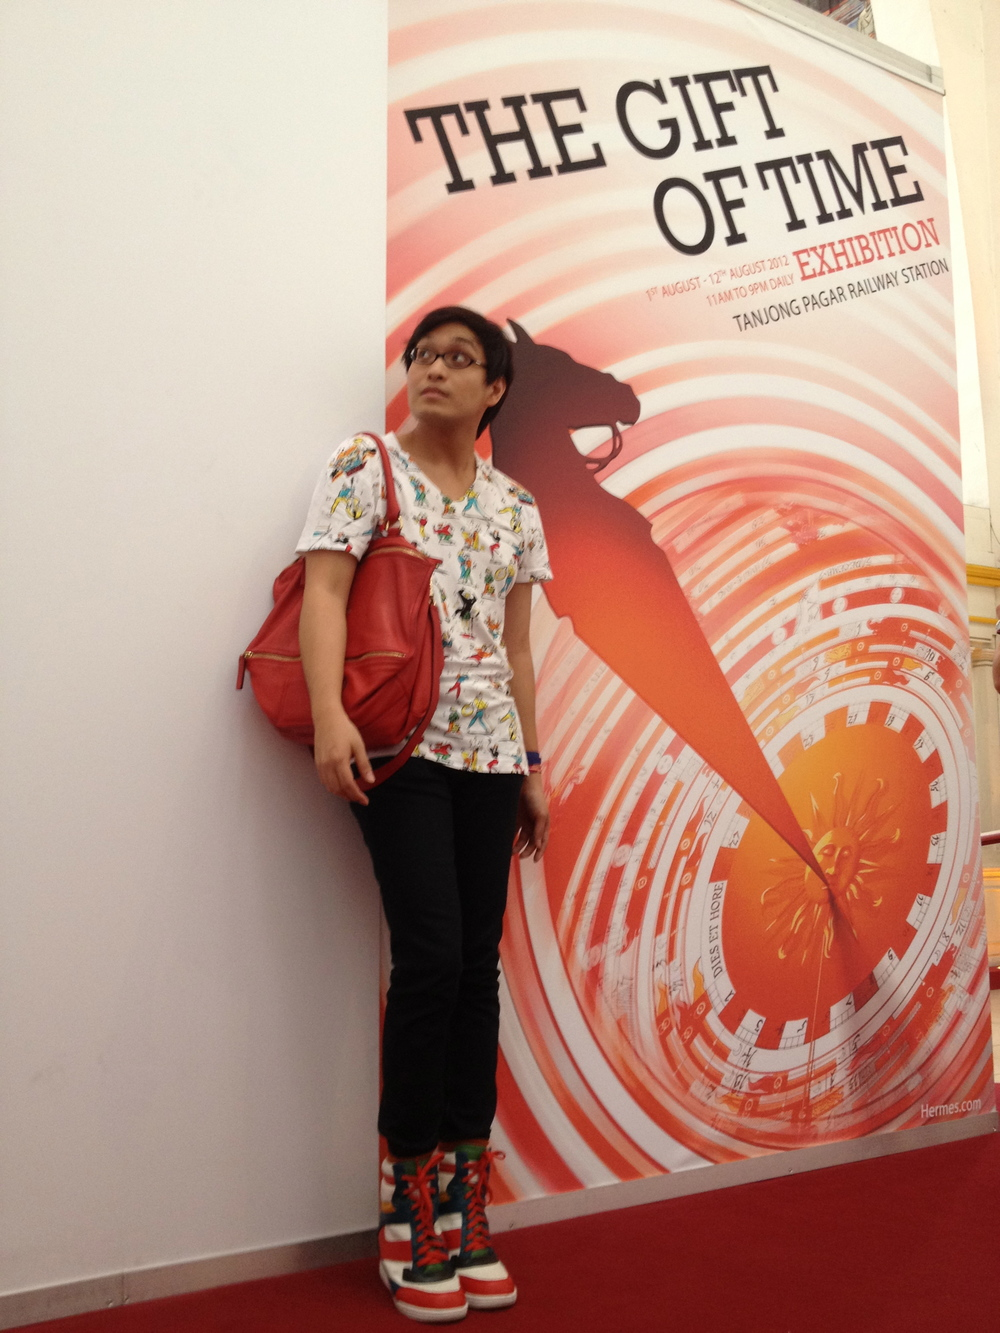 Hermes Gift of Time Exhibit